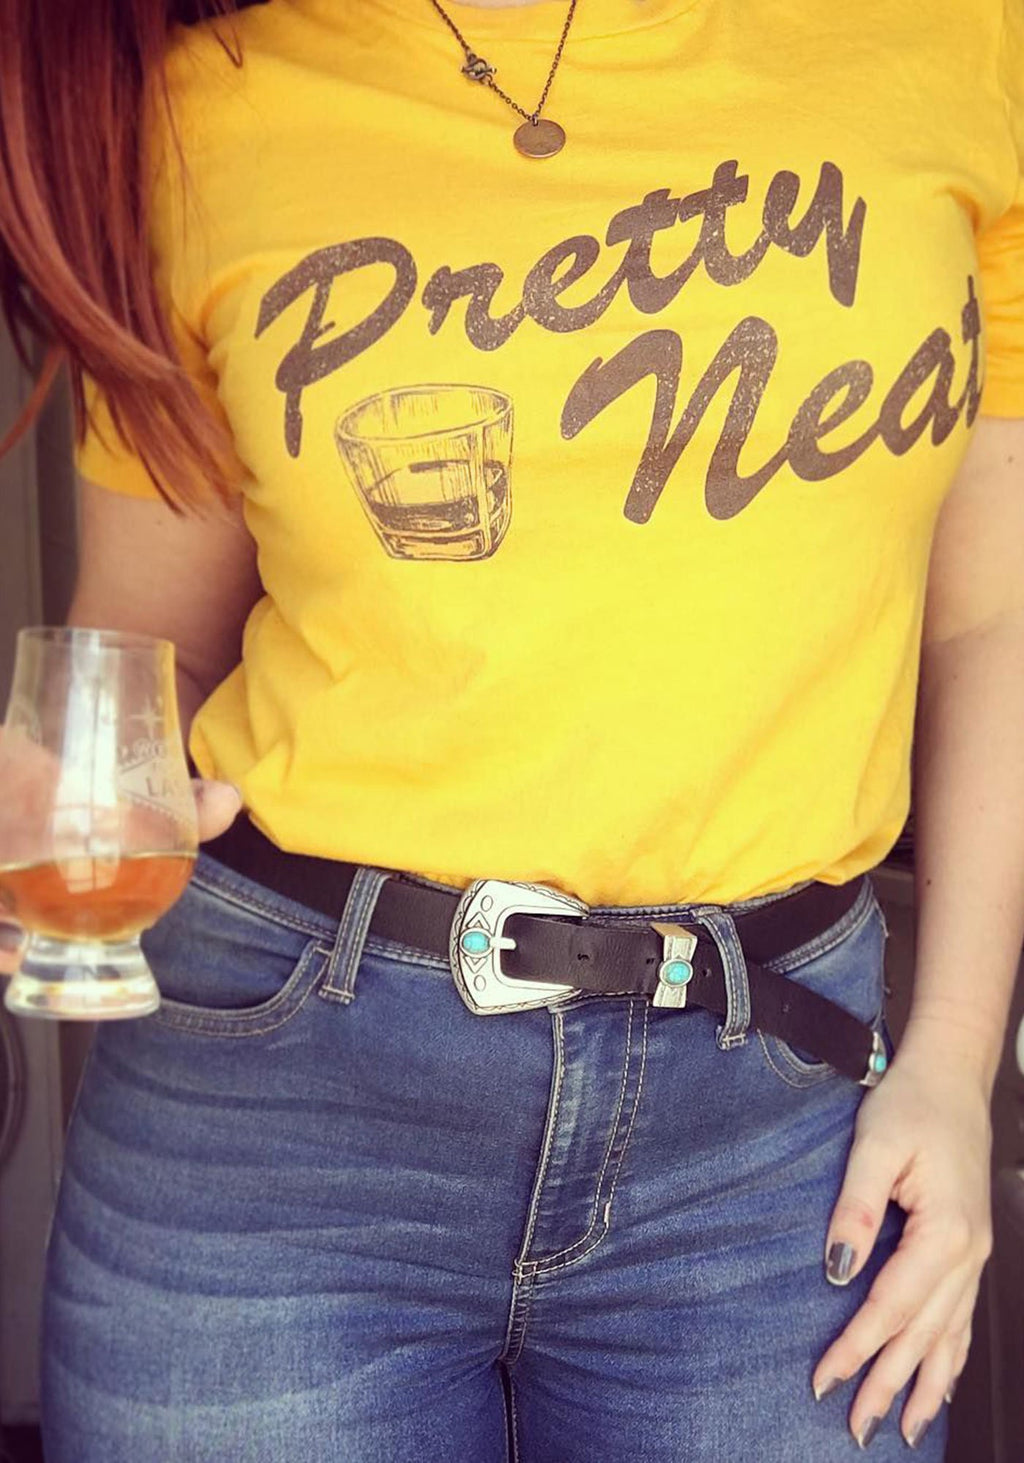 Pretty Neat Tee / womens graphic tees / vintage style 70s t shirt / whiskey drinking women / cowgirl southwest alcohol souvenir t-shirt